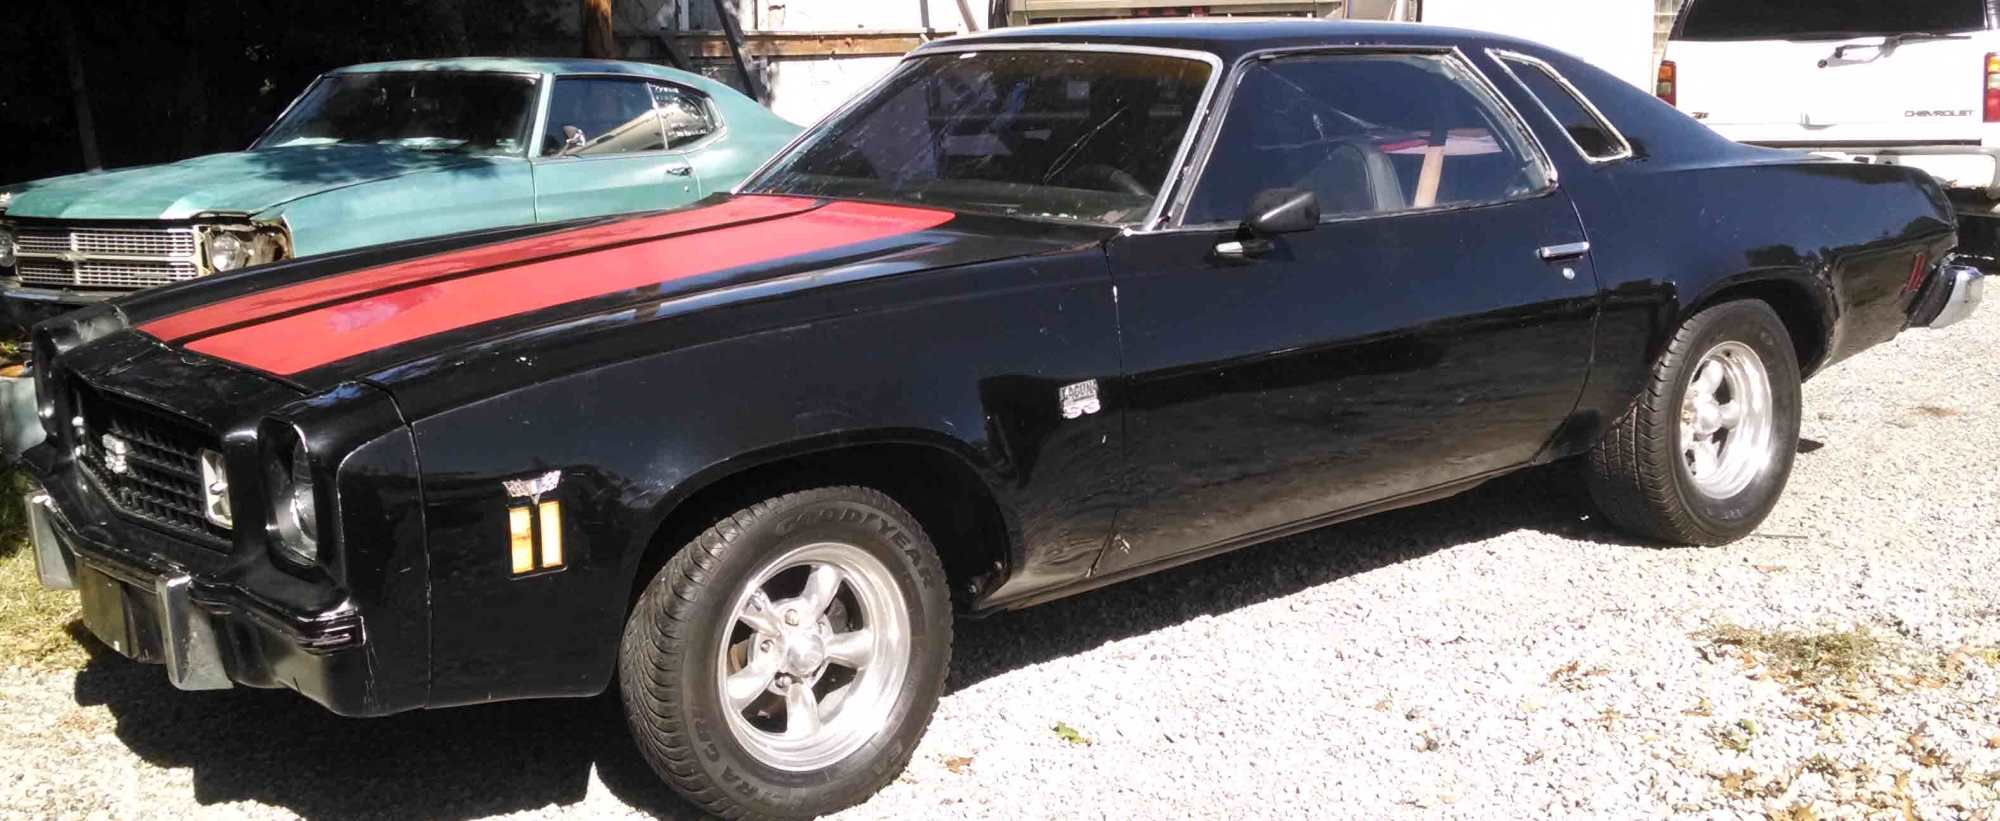 hight resolution of 1974 chevy chevelle laguna sold black with red stripes black cloth interior 350 v 8 auto 2 door